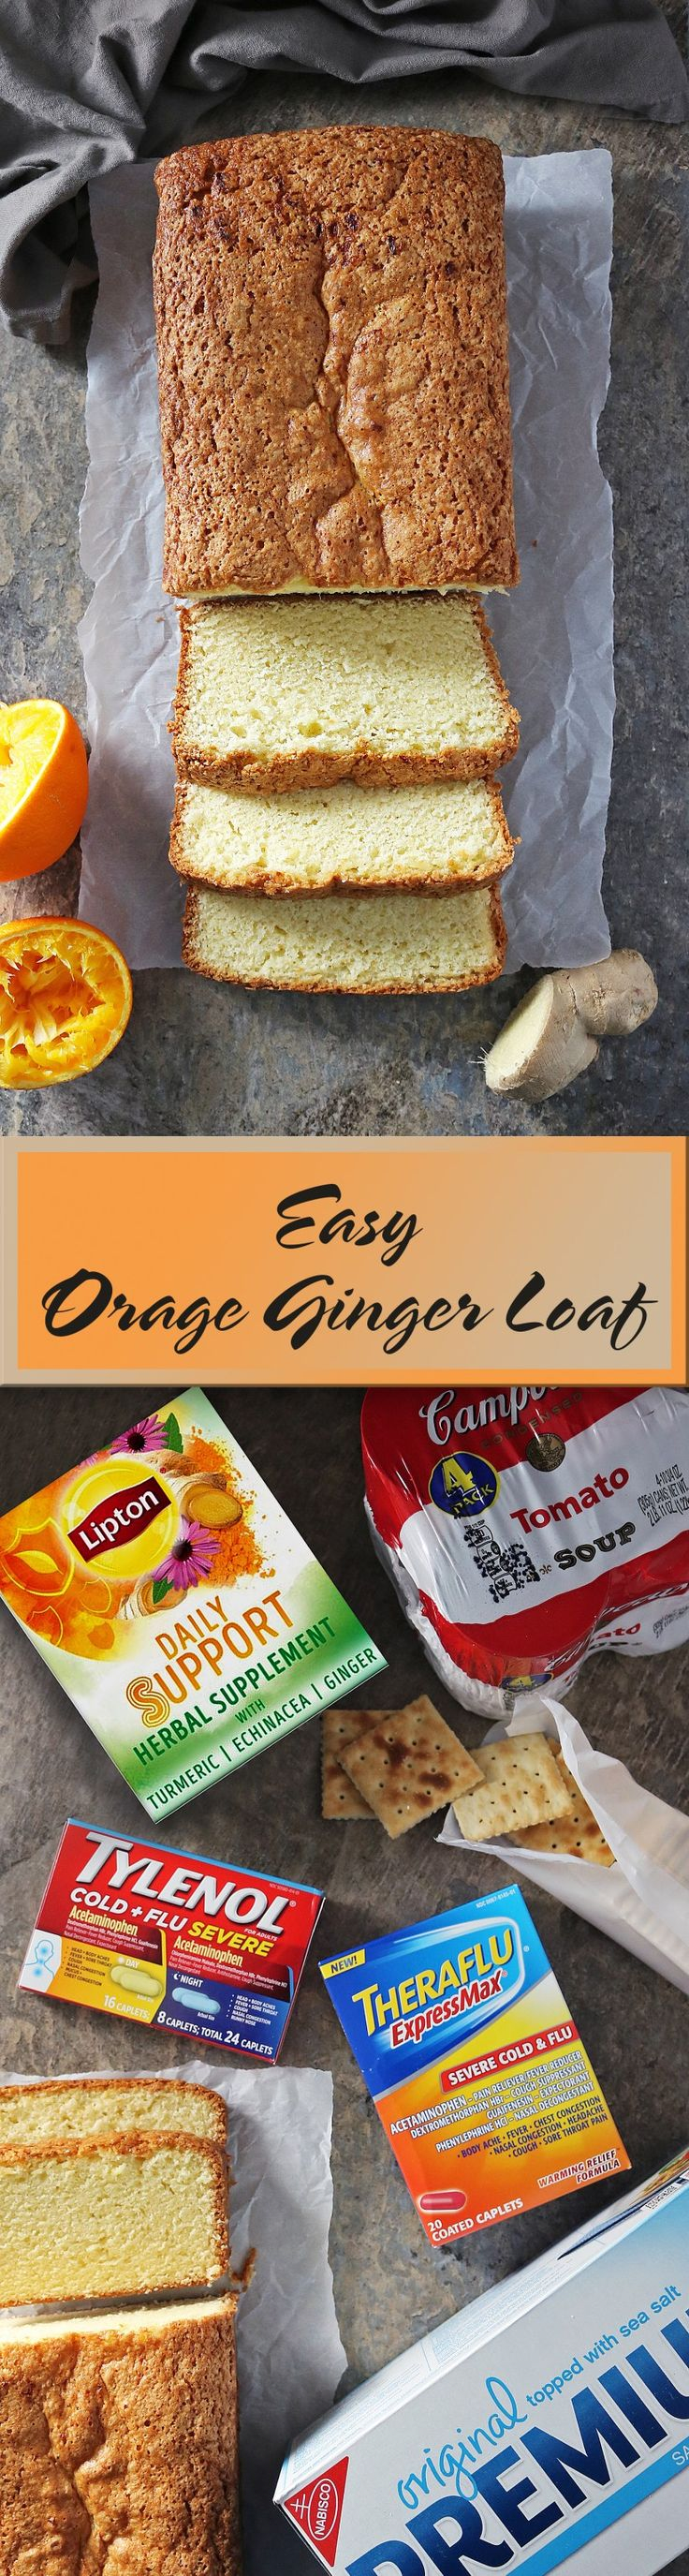 Easy Orange Ginger Loaf For #SickDaySolutions along with Campbell's®, Lipton, Premium Crackers, Theraflu and TYLENOL®. #ad